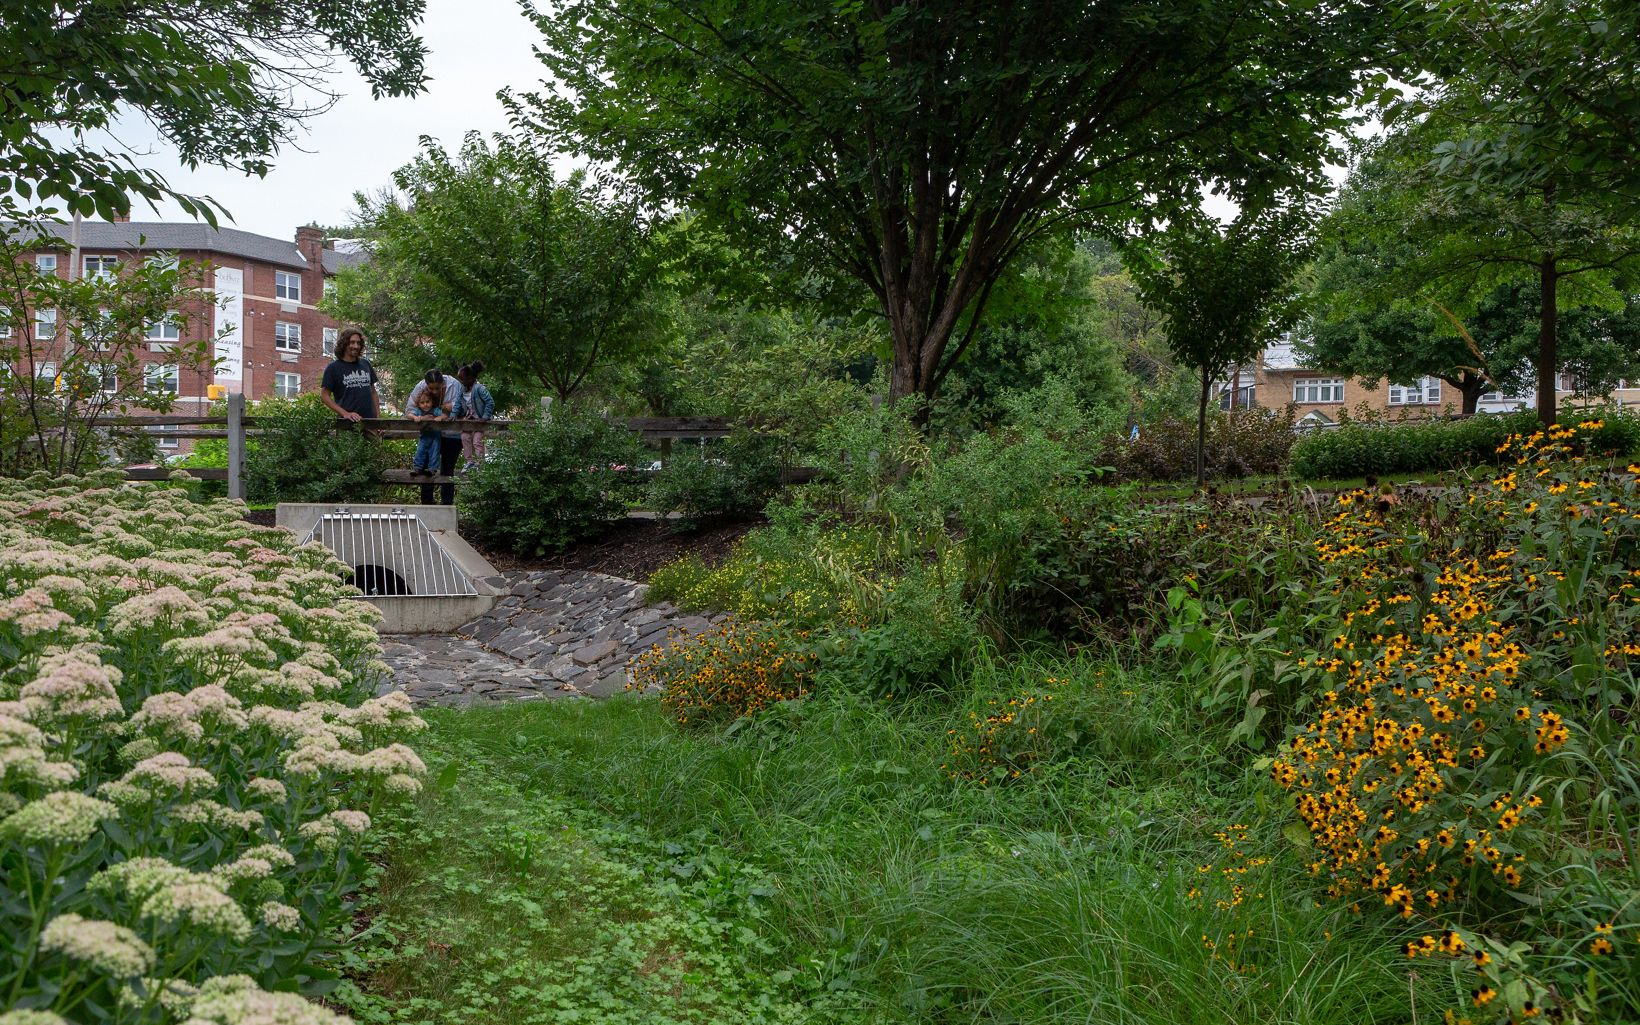 a park featuring a flowers and a culvert